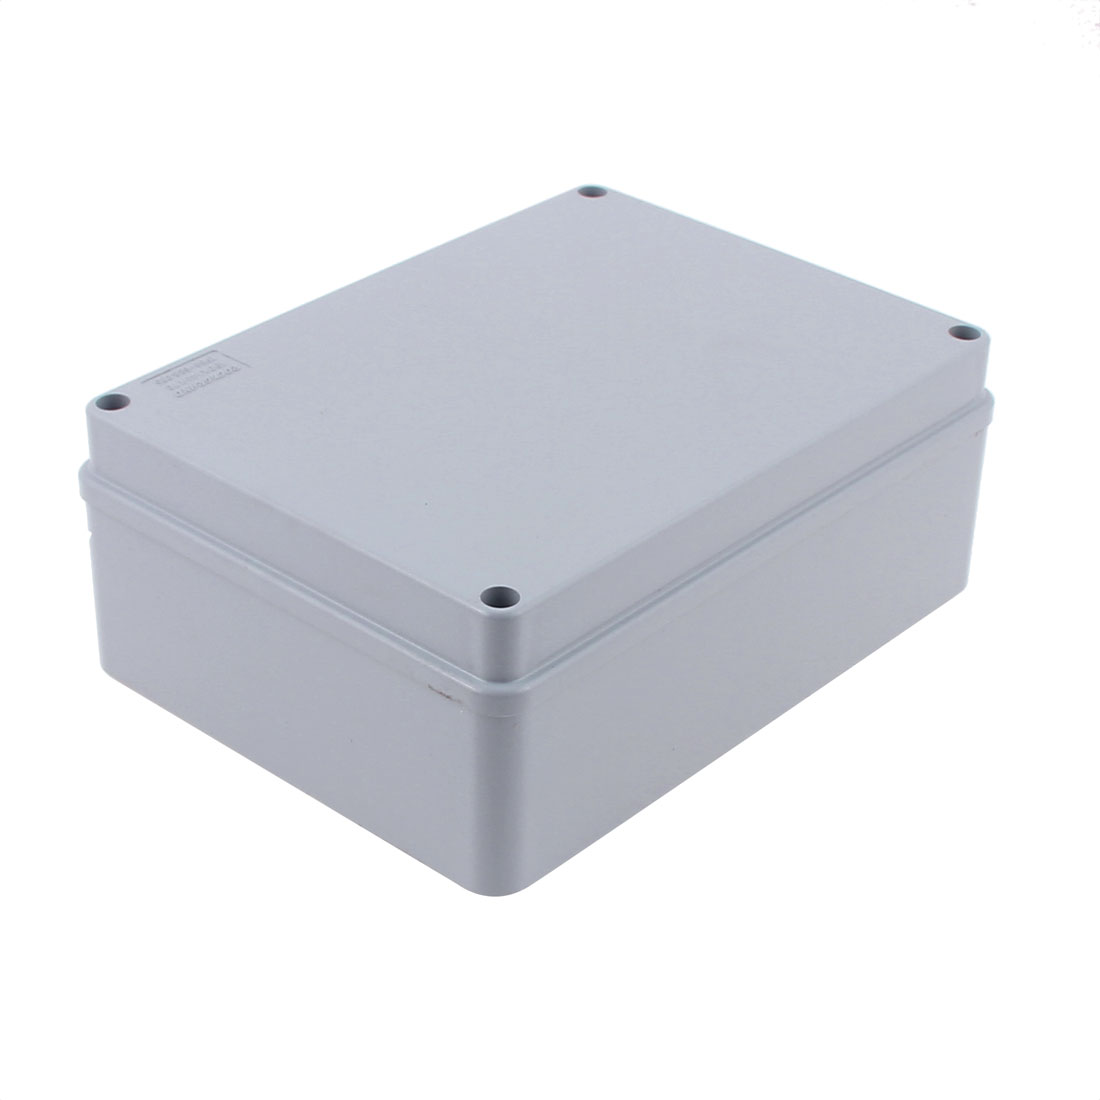 190 x 140 x 70mm Dustproof IP65 Junction Box DIY Sealed Connecting Box Enclosure